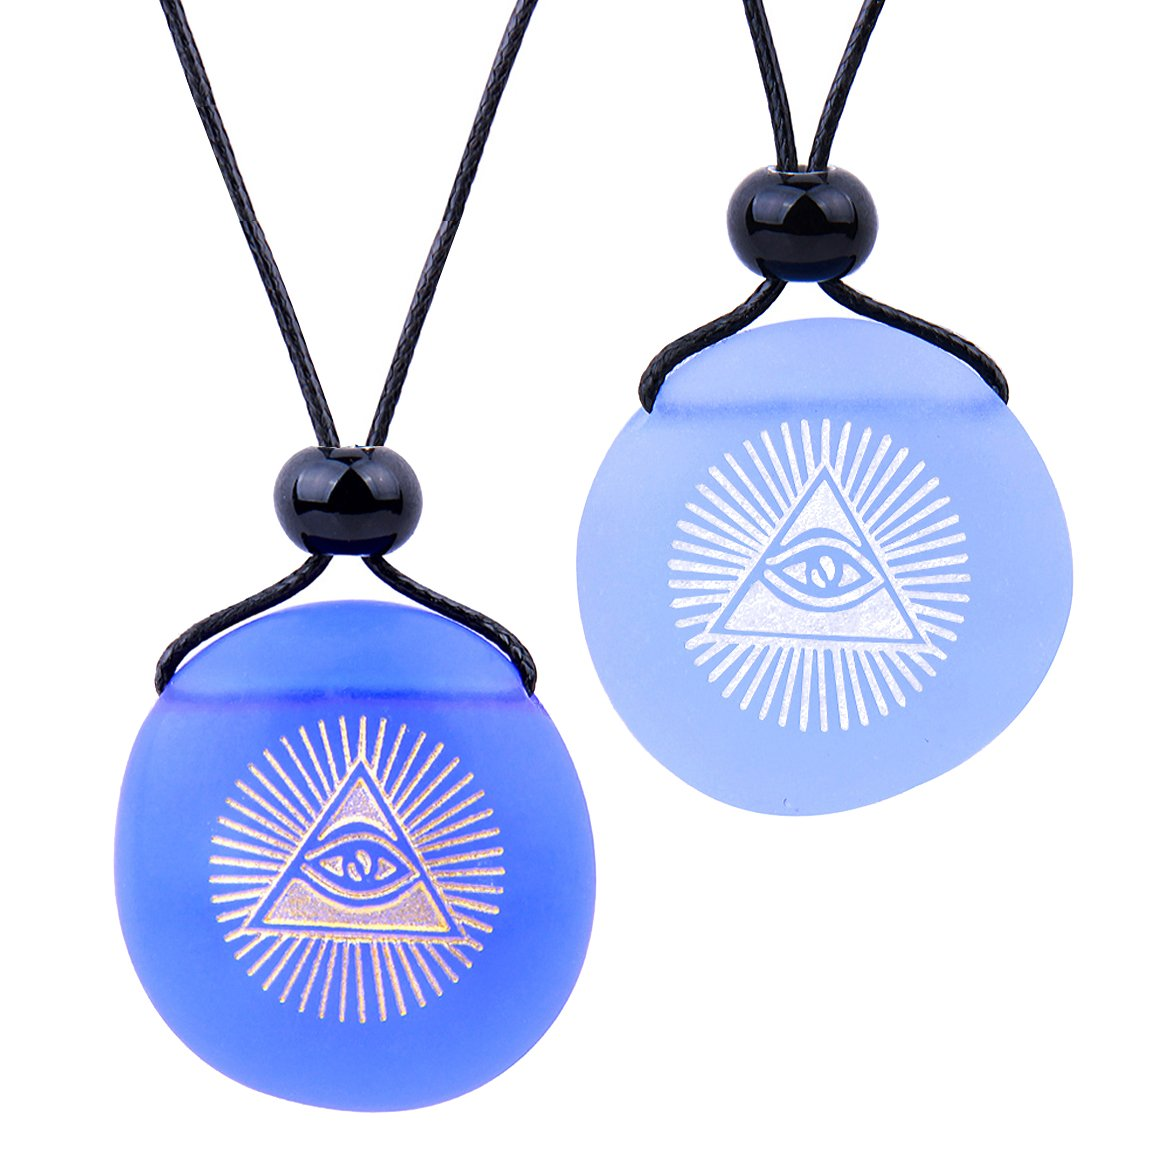 Frosted Sea Glass Stones Magic All Seeing Eye of God Love Couples BFF Amulets Sky Royal Blue Necklaces